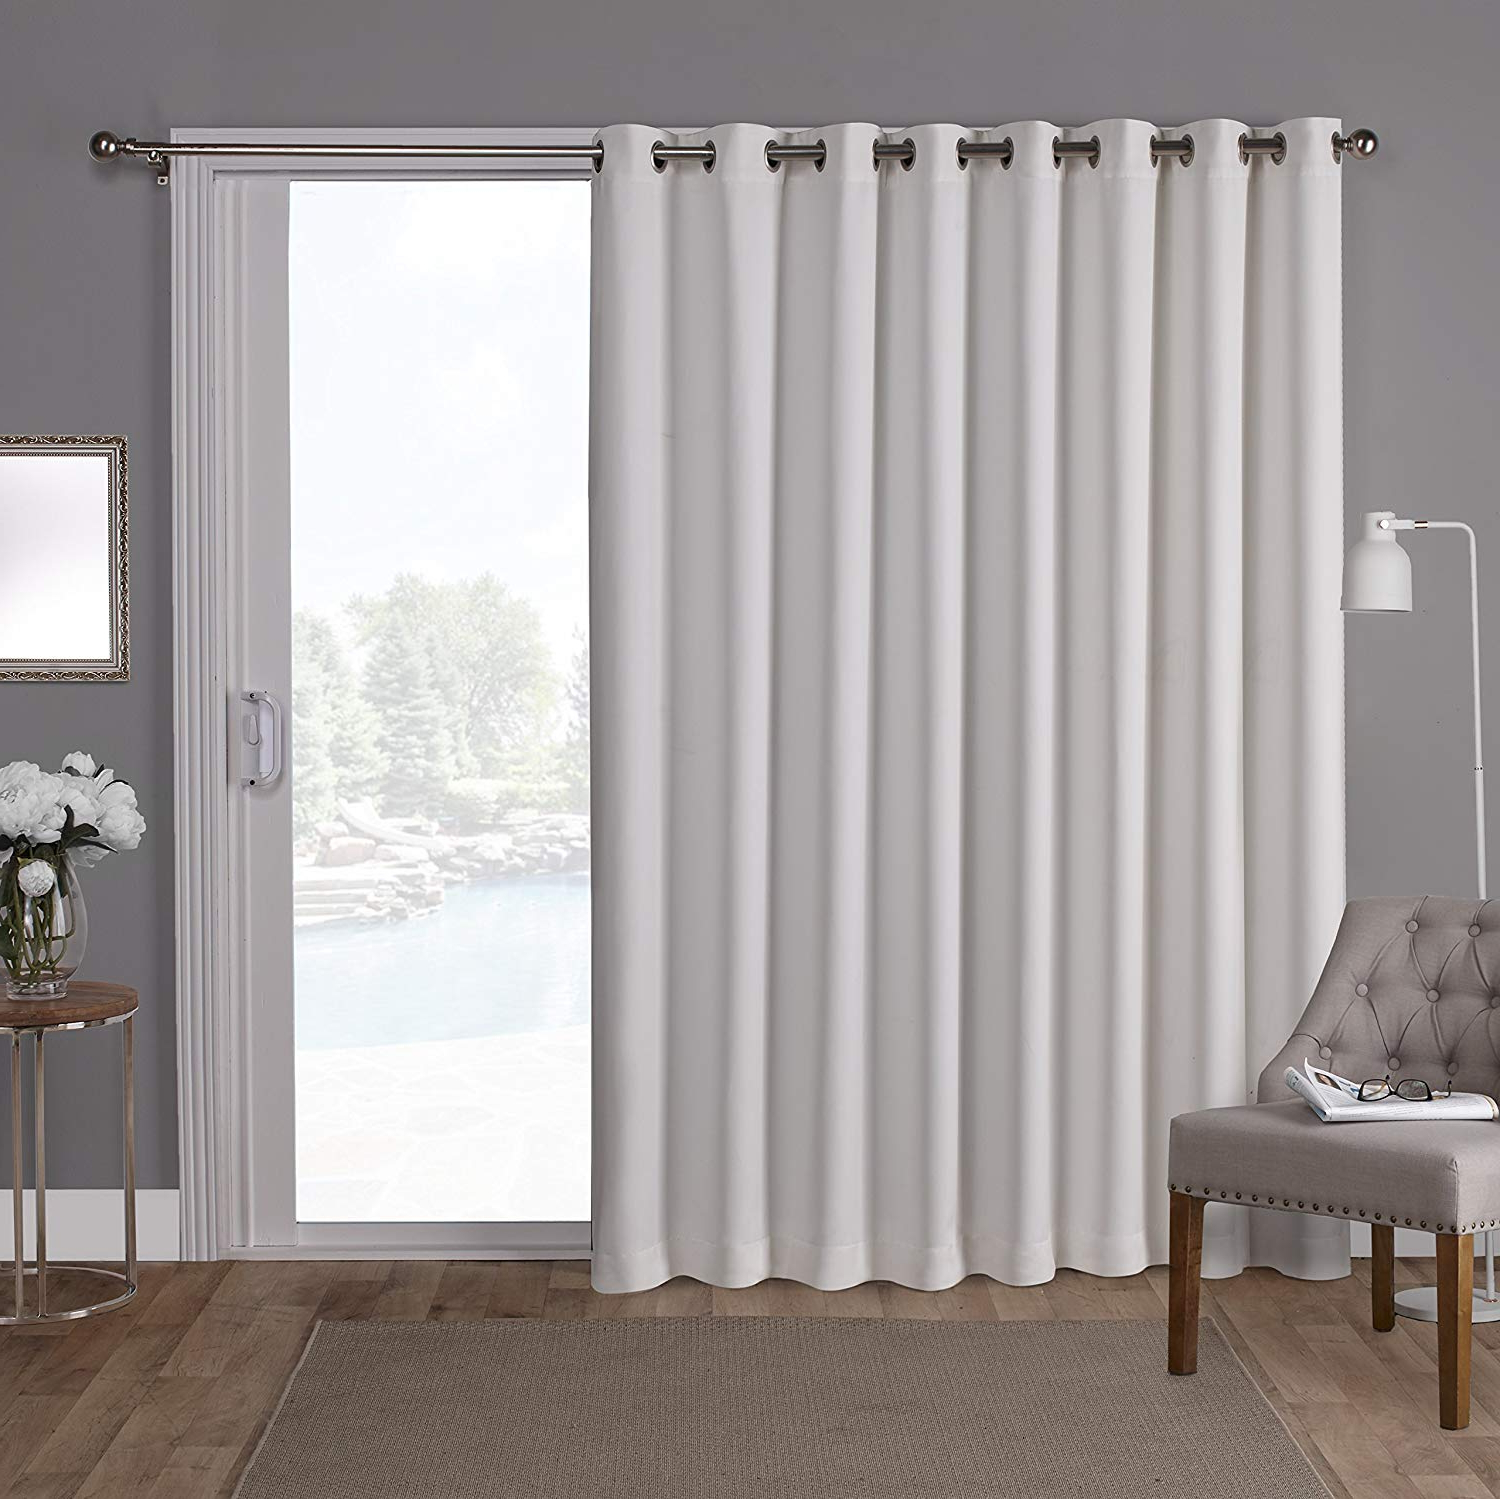 Patio Grommet Top Single Curtain Panels Within Well Known Exclusive Home Sateen Patio Woven Blackout Grommet Top Single Curtain Panel, Vanilla, 100x (View 3 of 20)